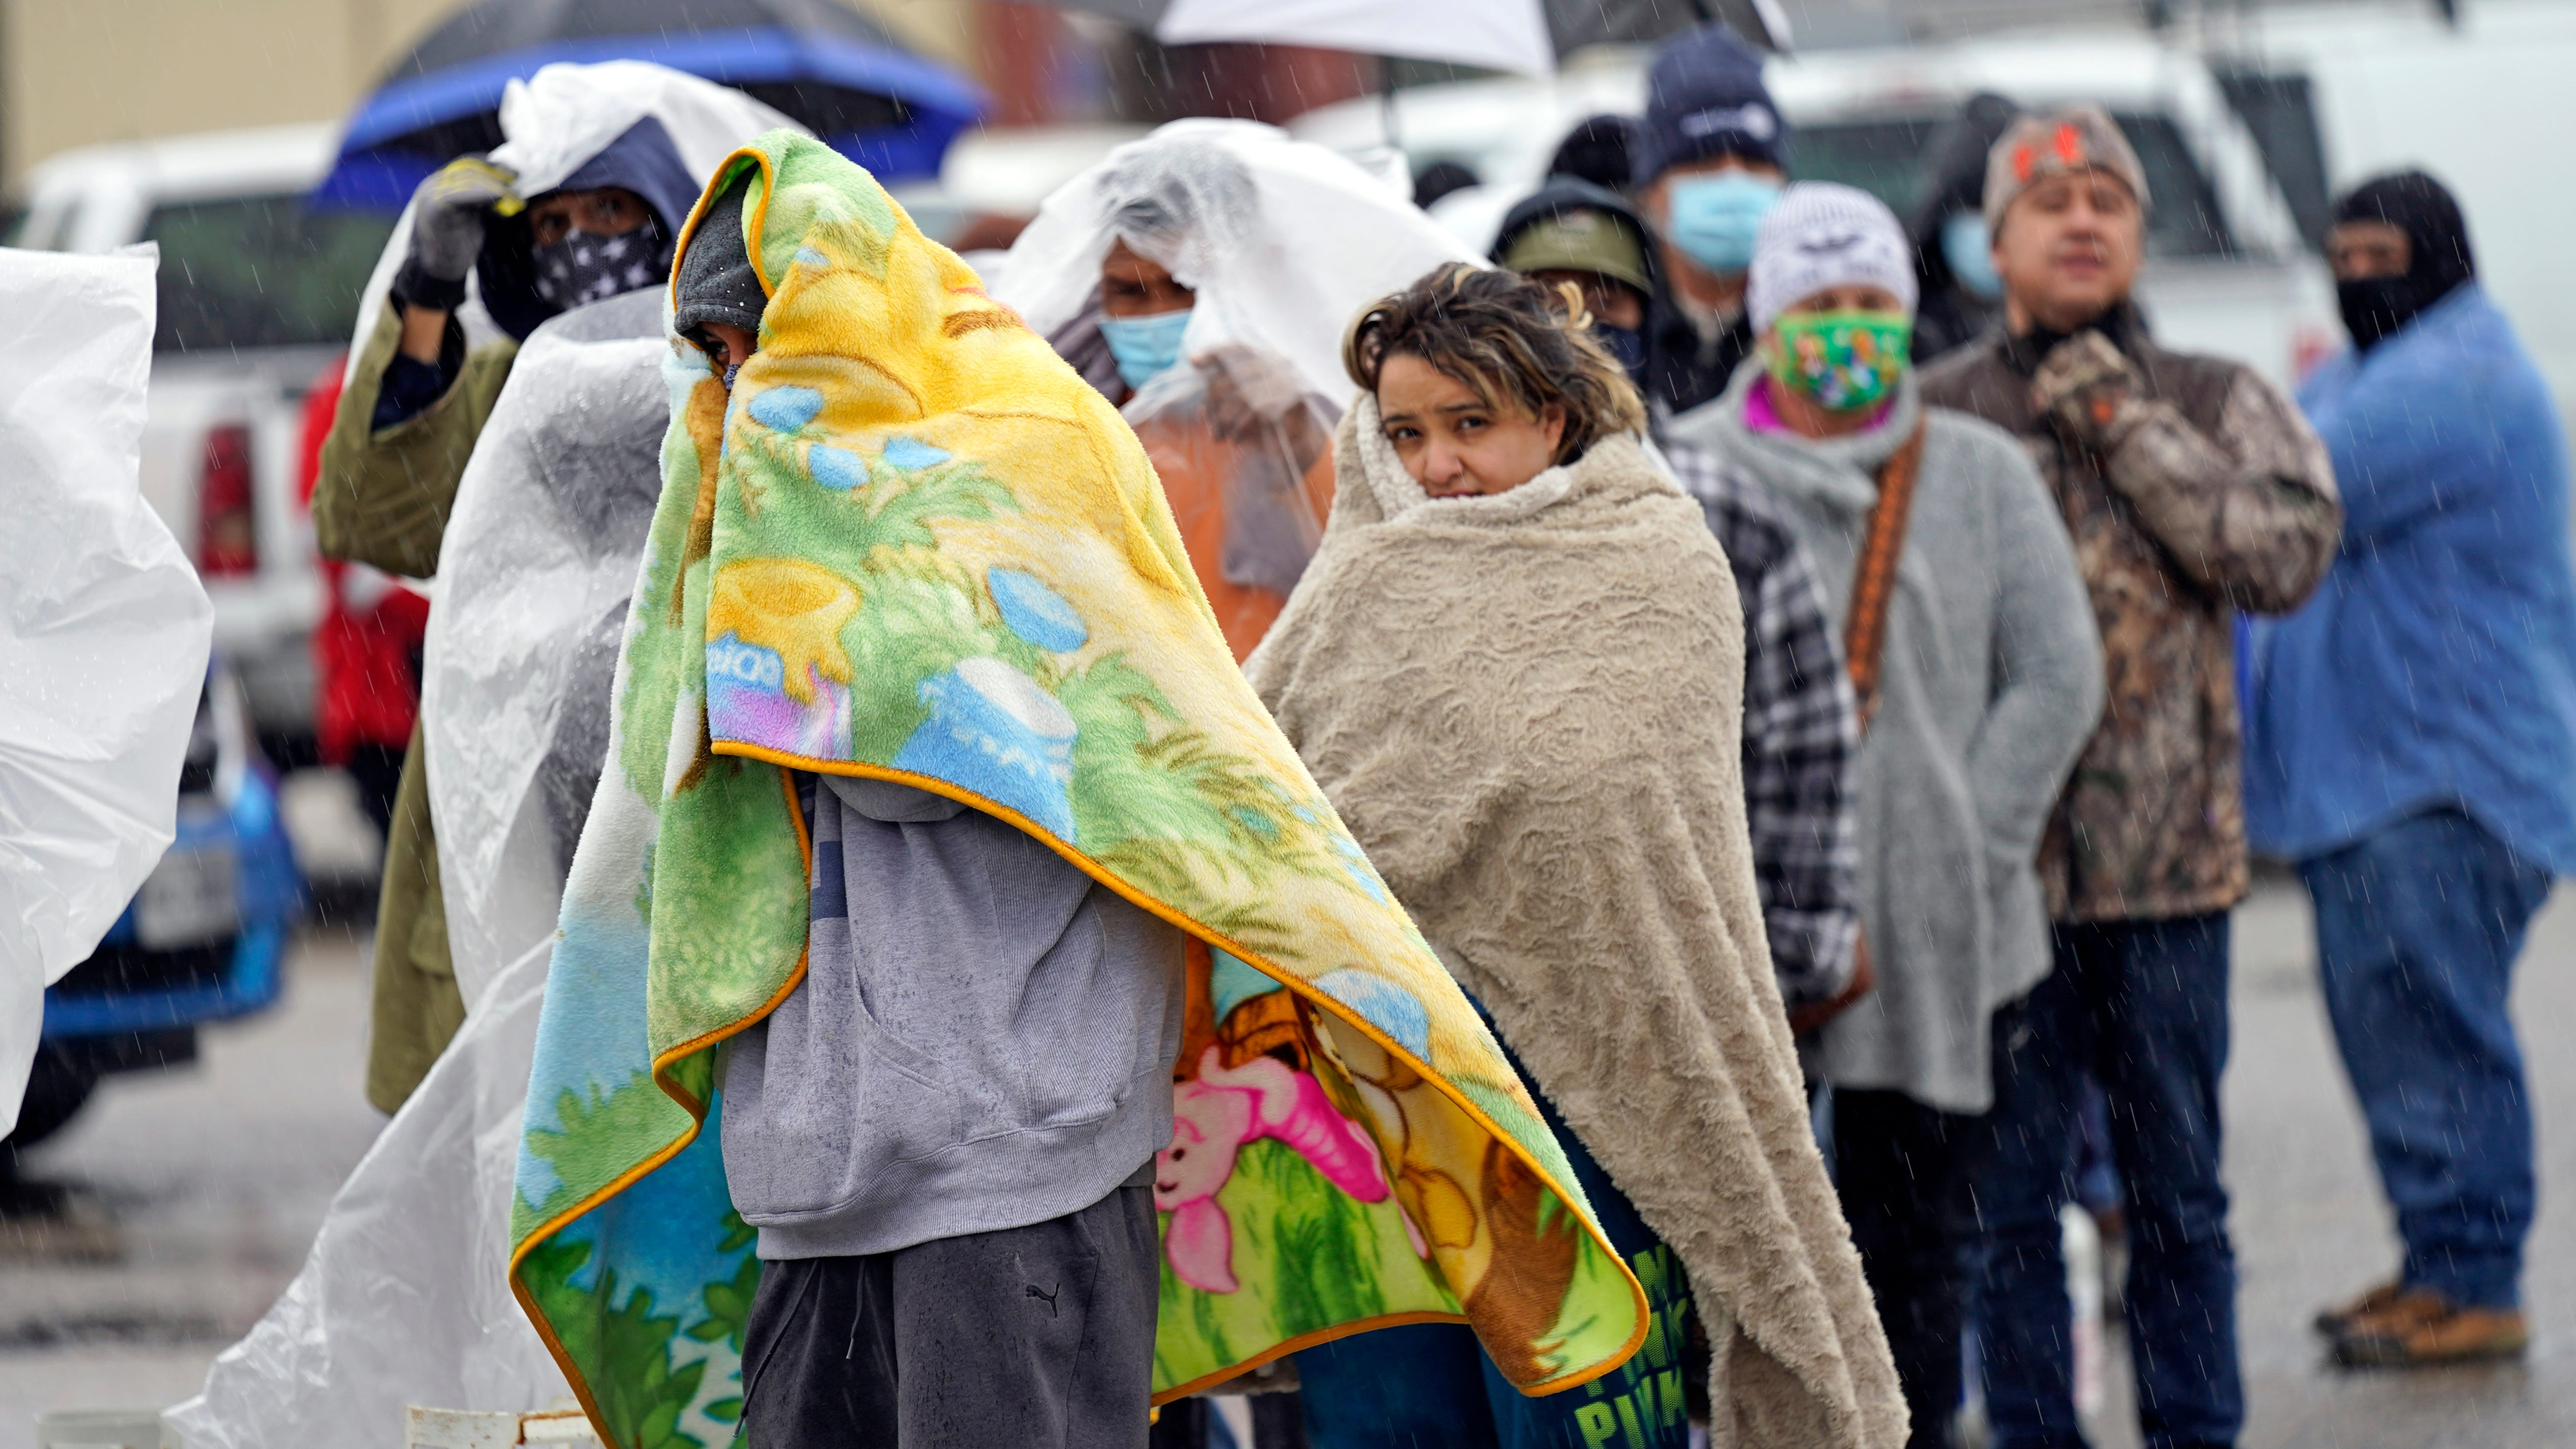 People wait in line to fill propane tanks Wednesday in Houston. Customers waited over an hour in the freezing rain to fill their tanks